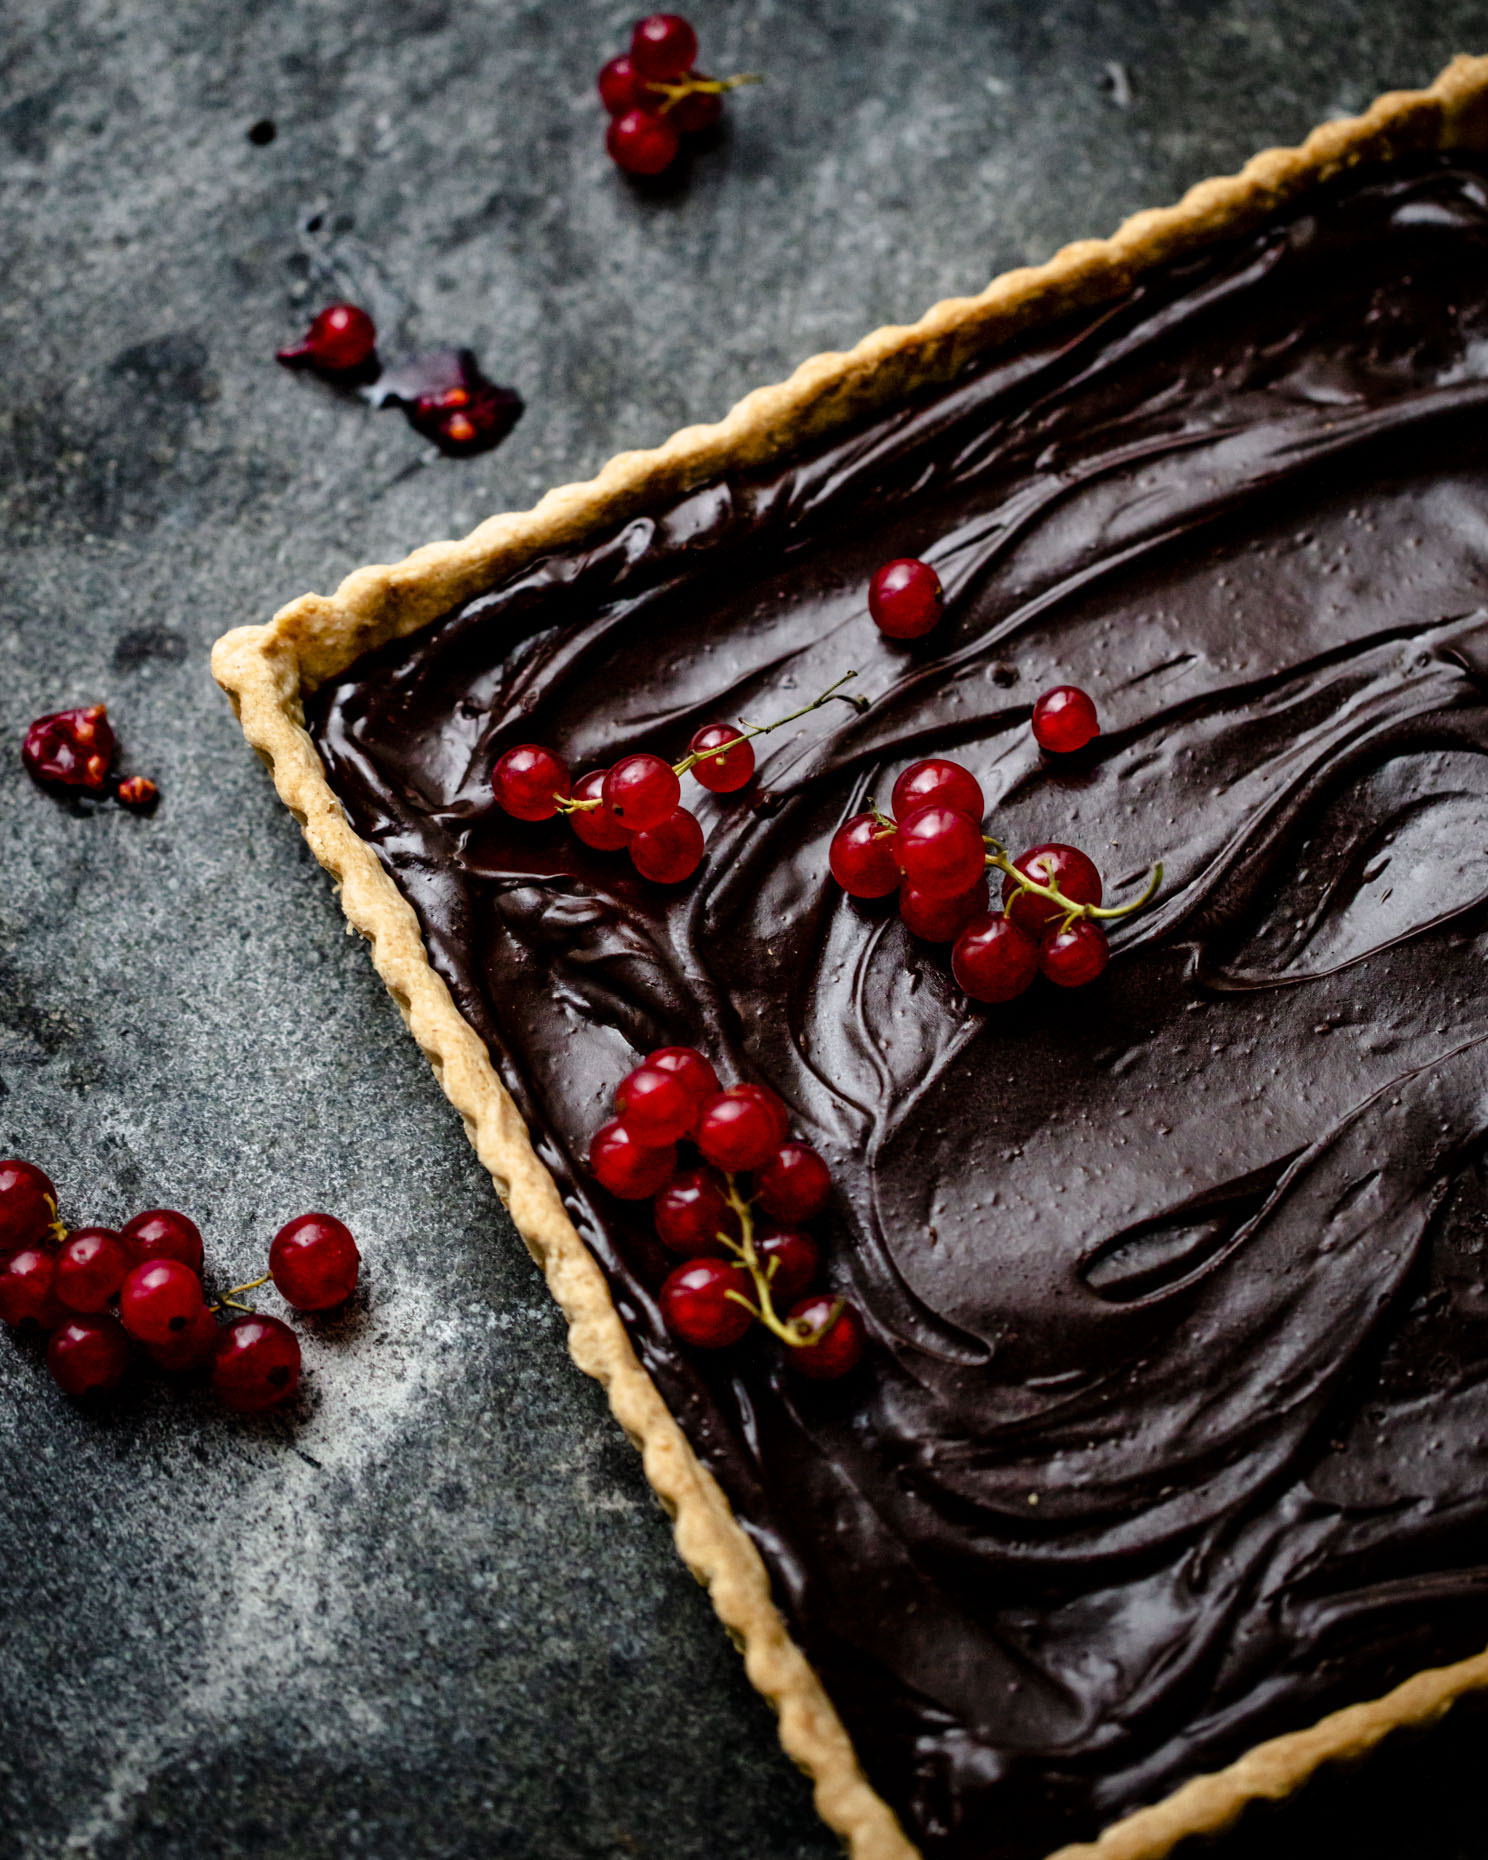 larsen_chocolate_ganache_tart_with_fresh_fruit_0026